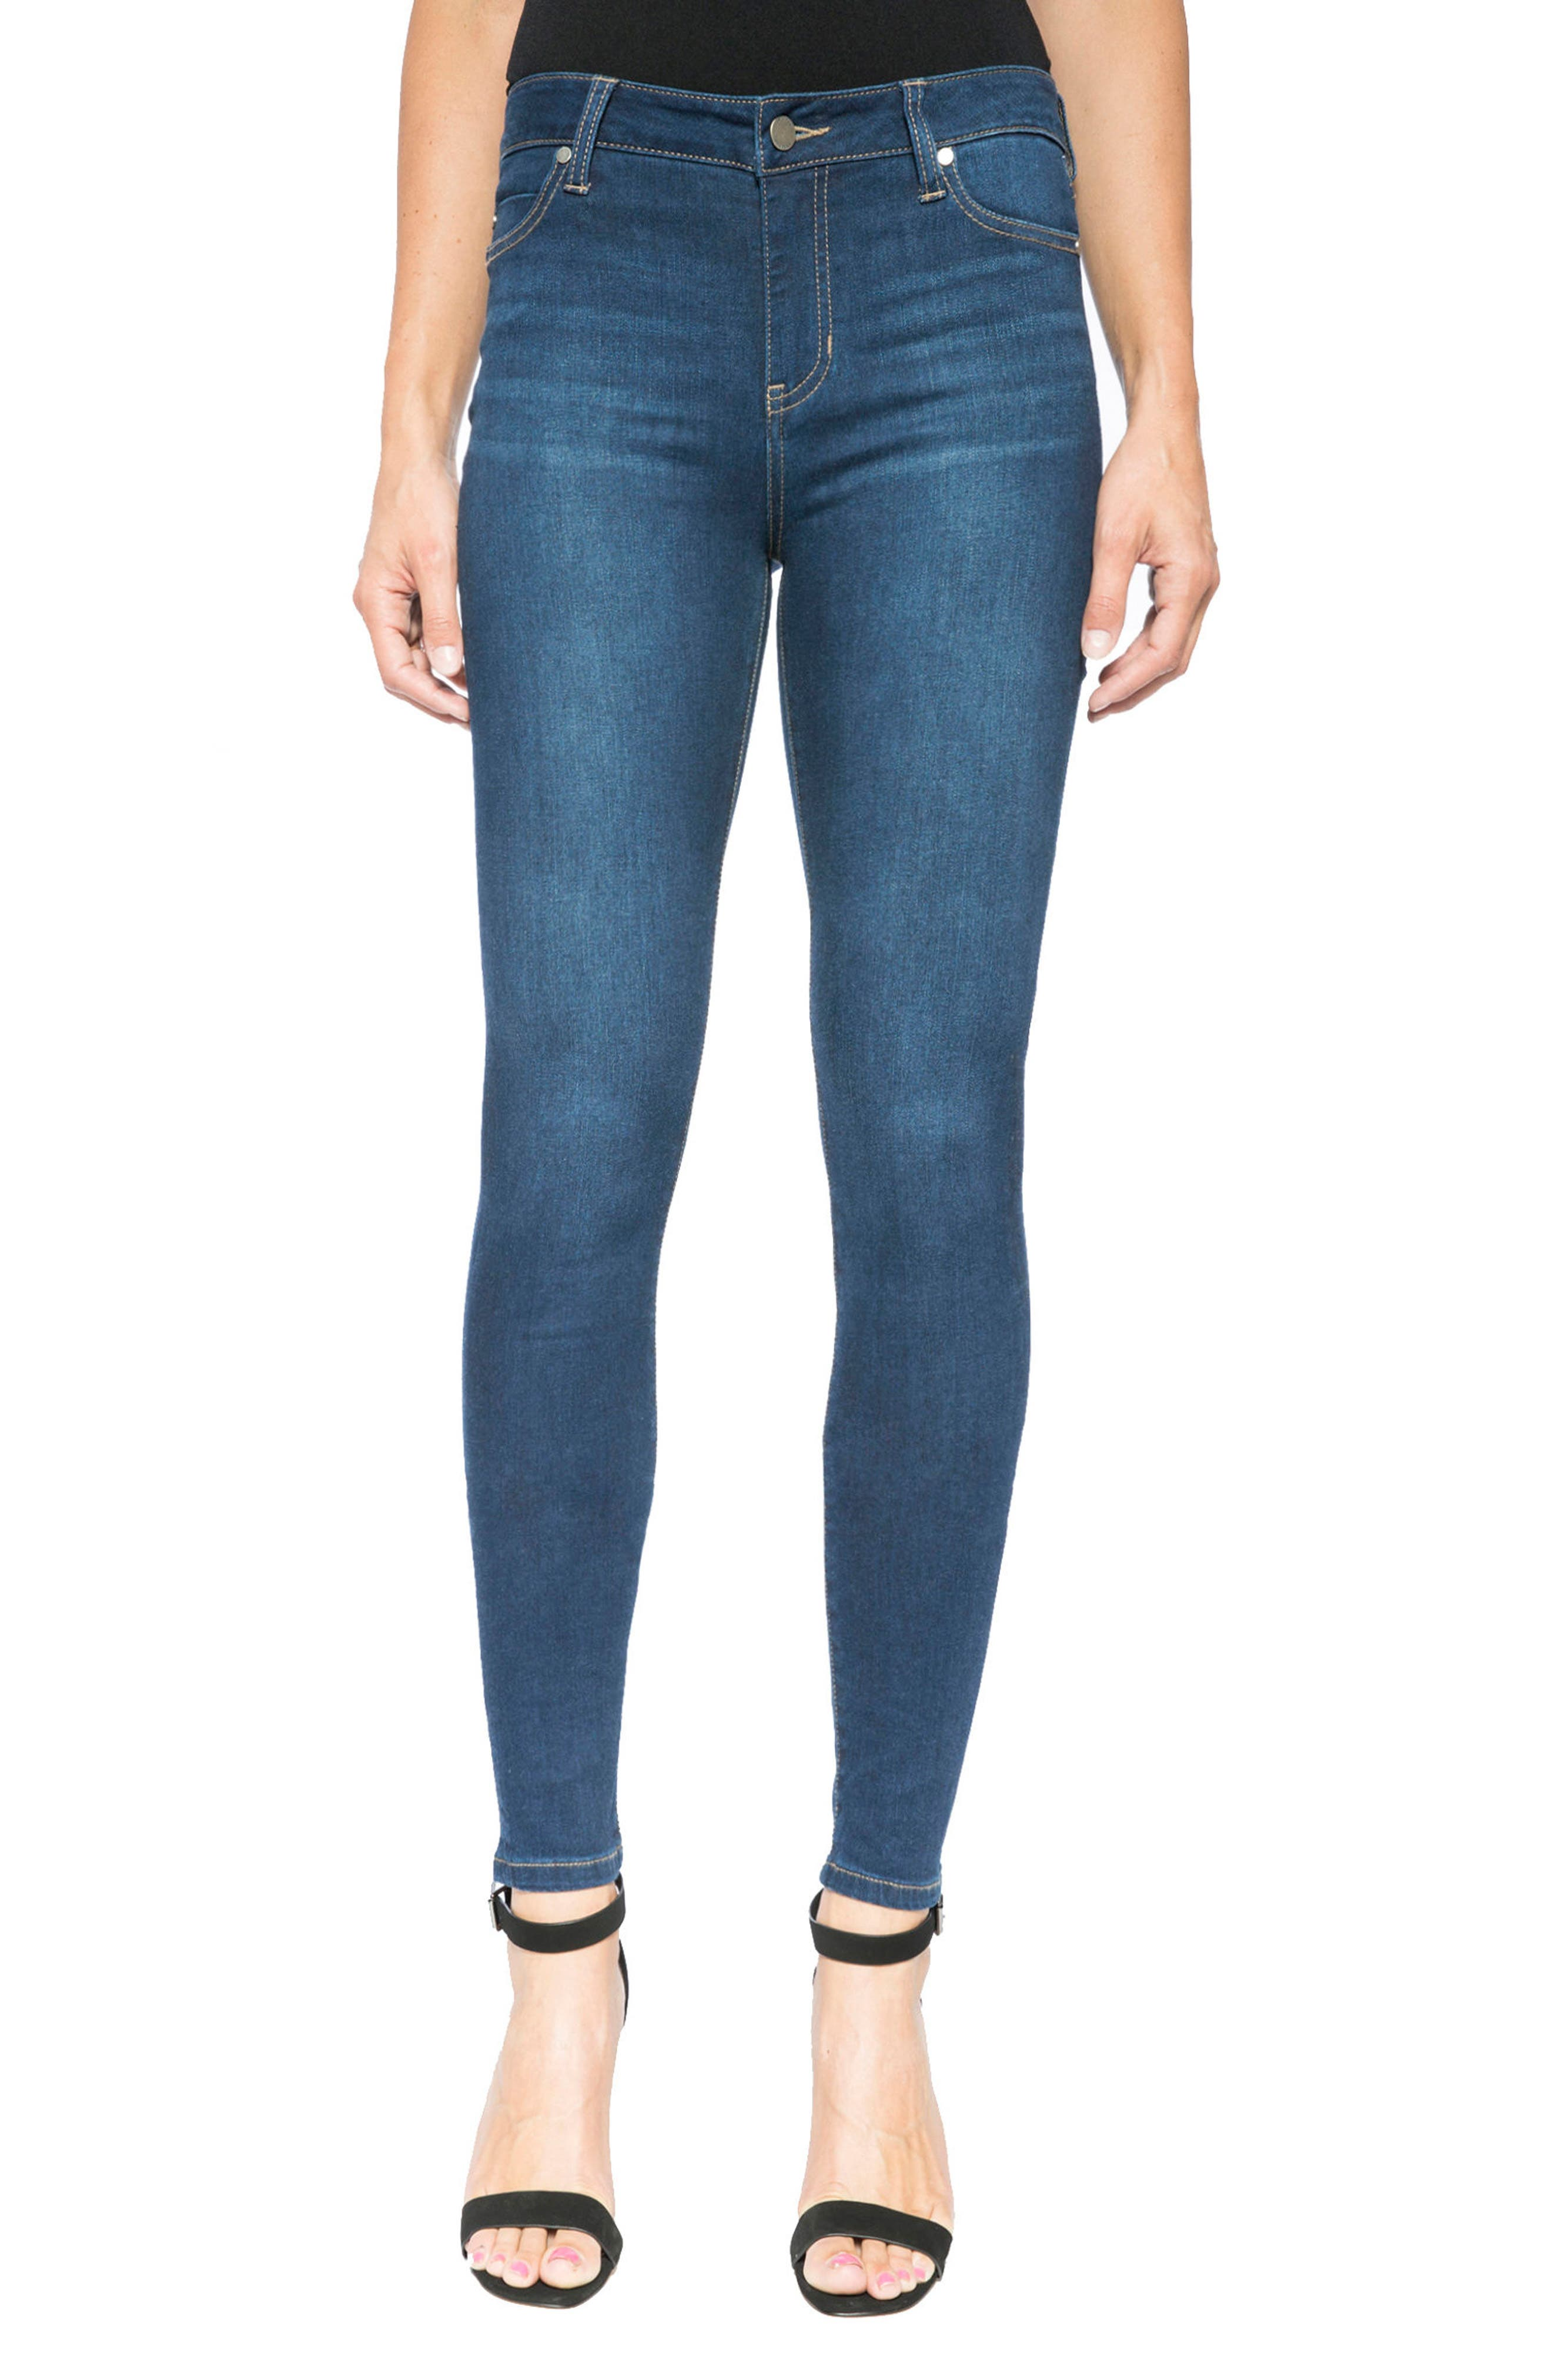 Liverpool Jeans Company Abby Stretch Curvy Fit Skinny Jeans (Manchestor) (Petite)